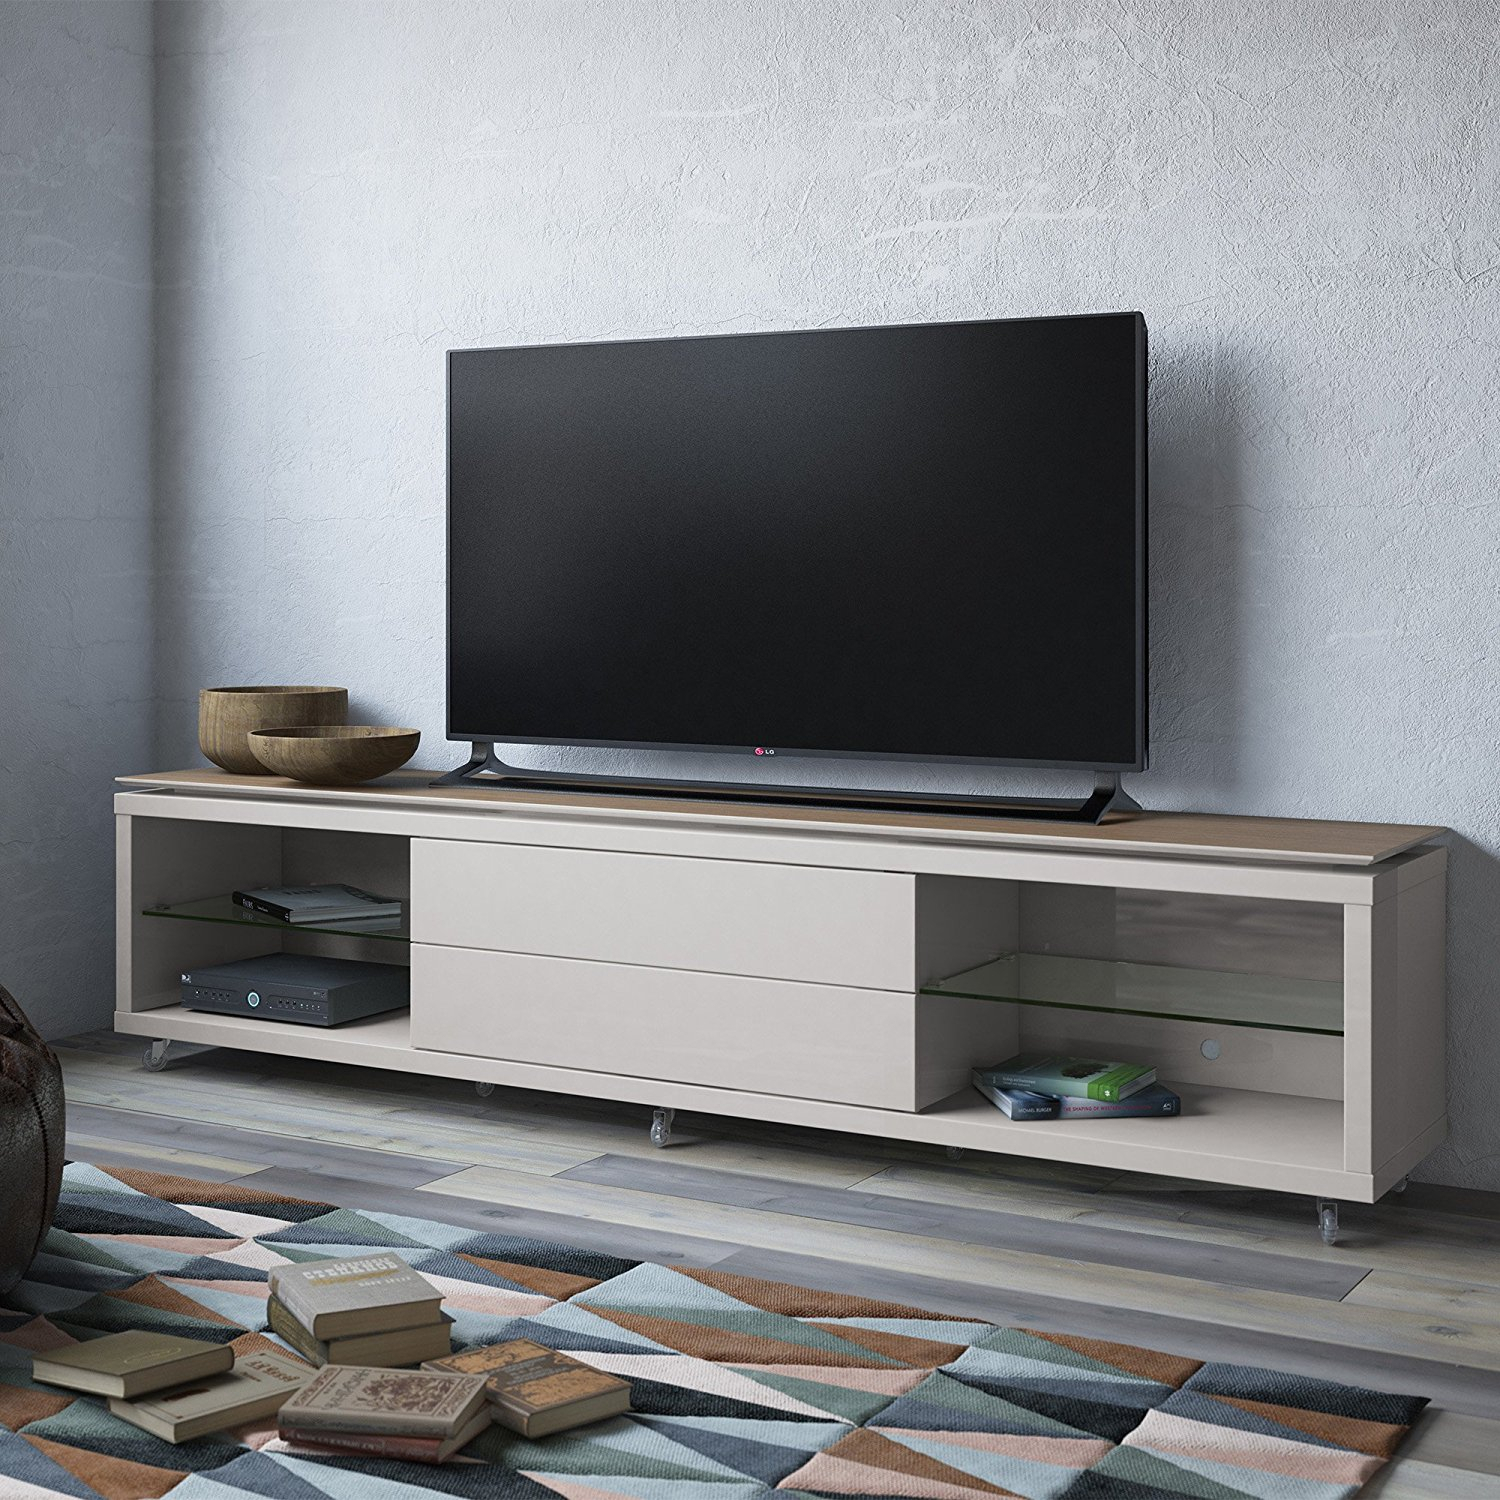 Furniture: Annabelle Black 70 Inch Tv Stand | Living Spaces in Annabelle Black 70 Inch Tv Stands (Image 19 of 30)